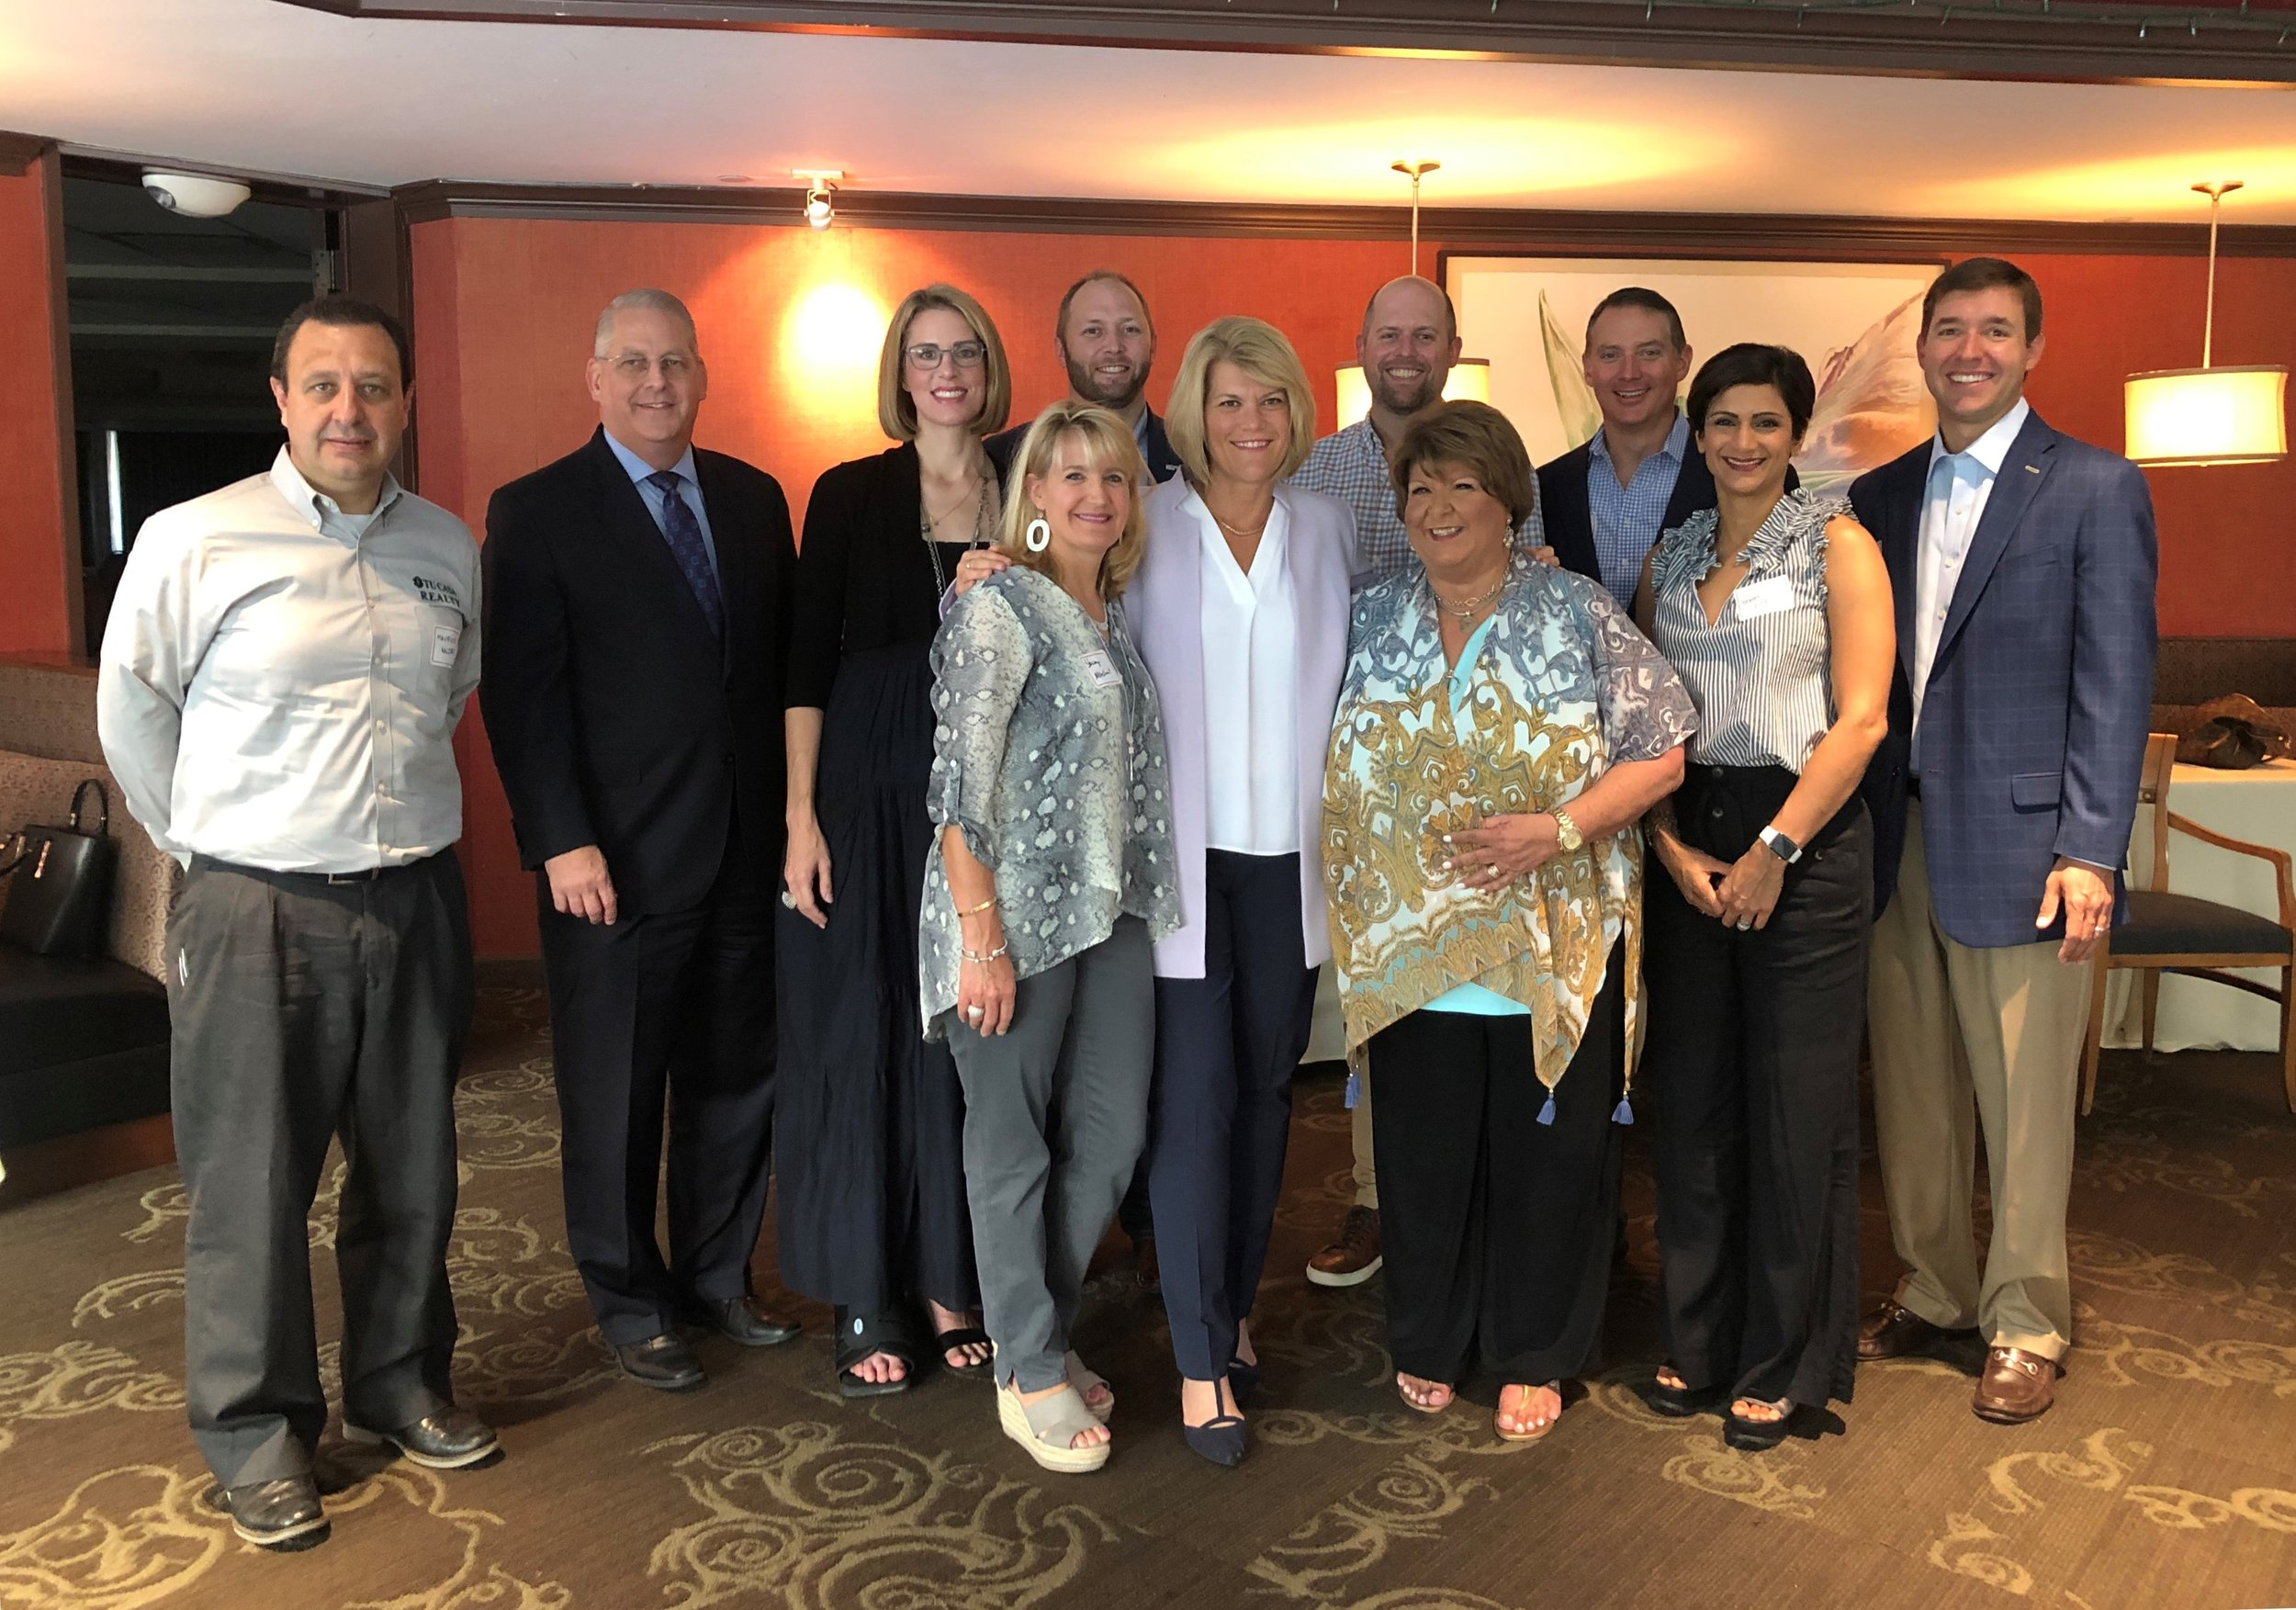 Meet the SBEF new board members: Back row (l. to r.) – Mauricio Valdes, Tom DeBesse, Elizabeth Wang, Kevin Doffing, Chris Weekley, Langston Turner, Colby Mueck. Front row (l. to r.) – Stacey Merchant, Jennifer Blaine, Cece Thompson, Bibbin Gill